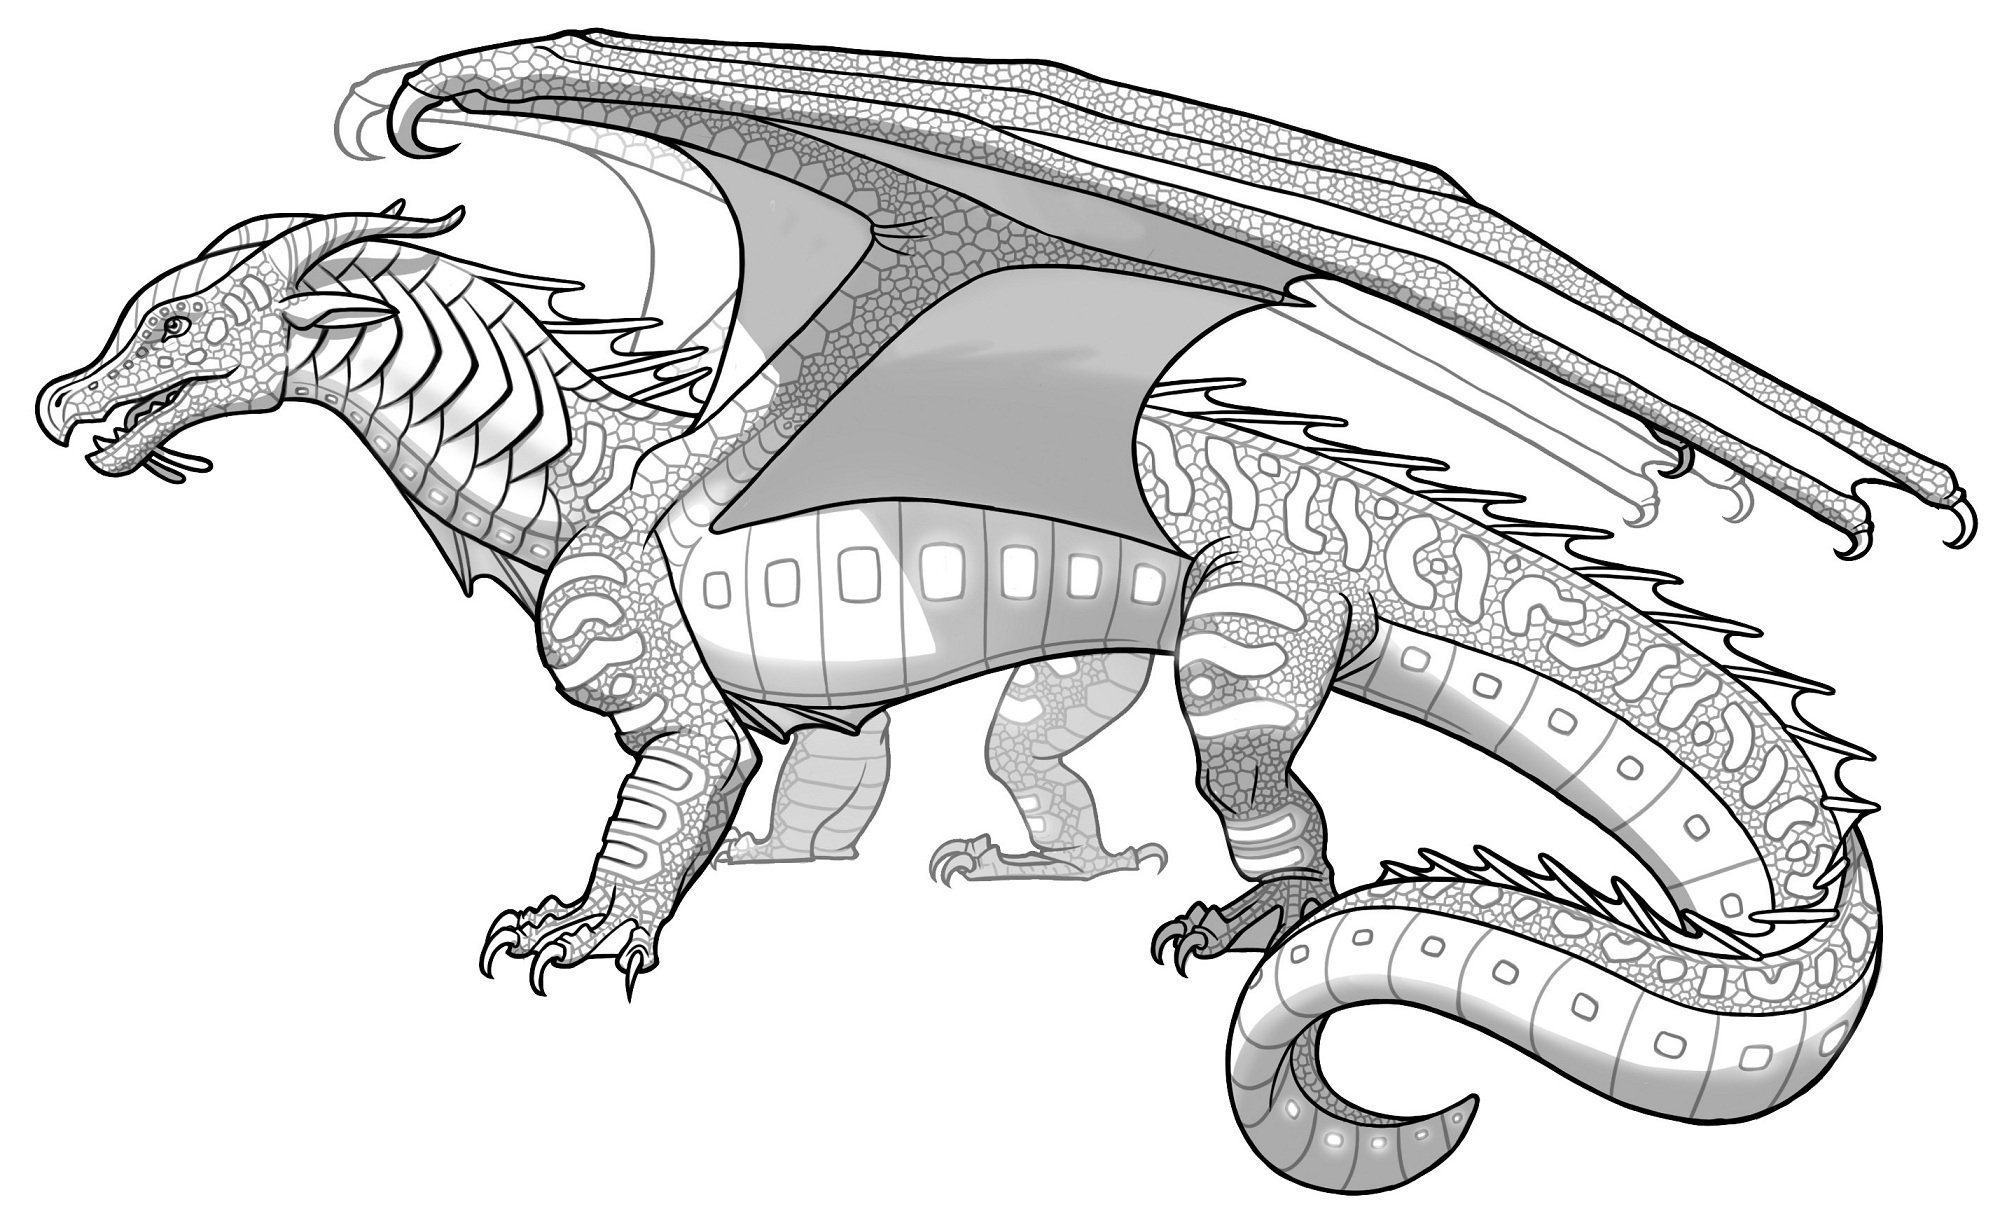 wings of fire dragons Colouring Pages | Wings of fire, Wings of fire dragons,  Fire dragon